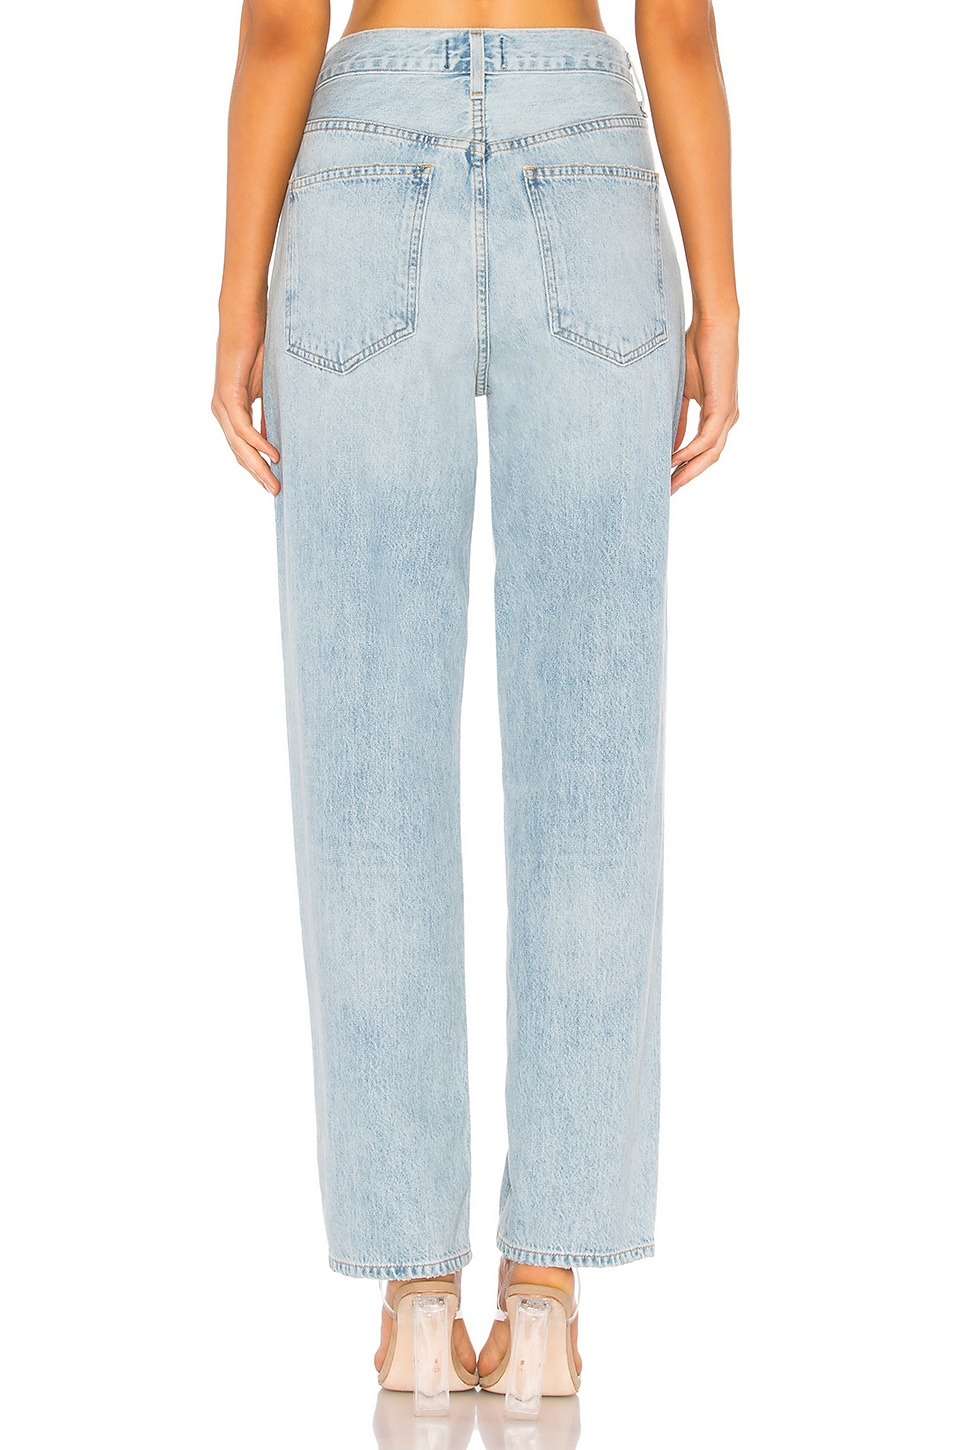 Criss Cross Upsized Jean, view 4, click to view large image.